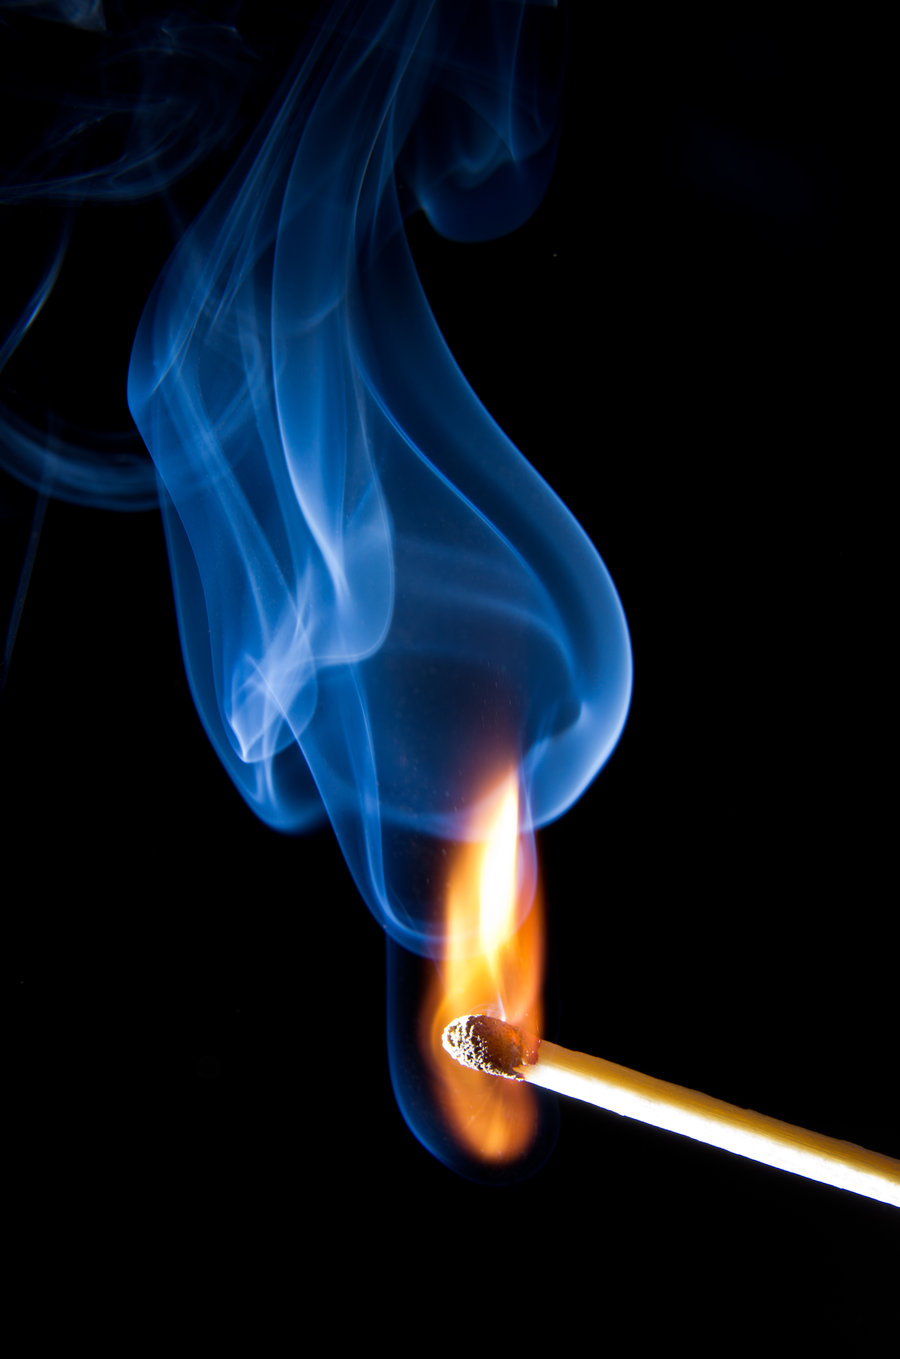 blue_and_gold_smoke_and_fire_by_jaggedtech-d41sevw.jpg